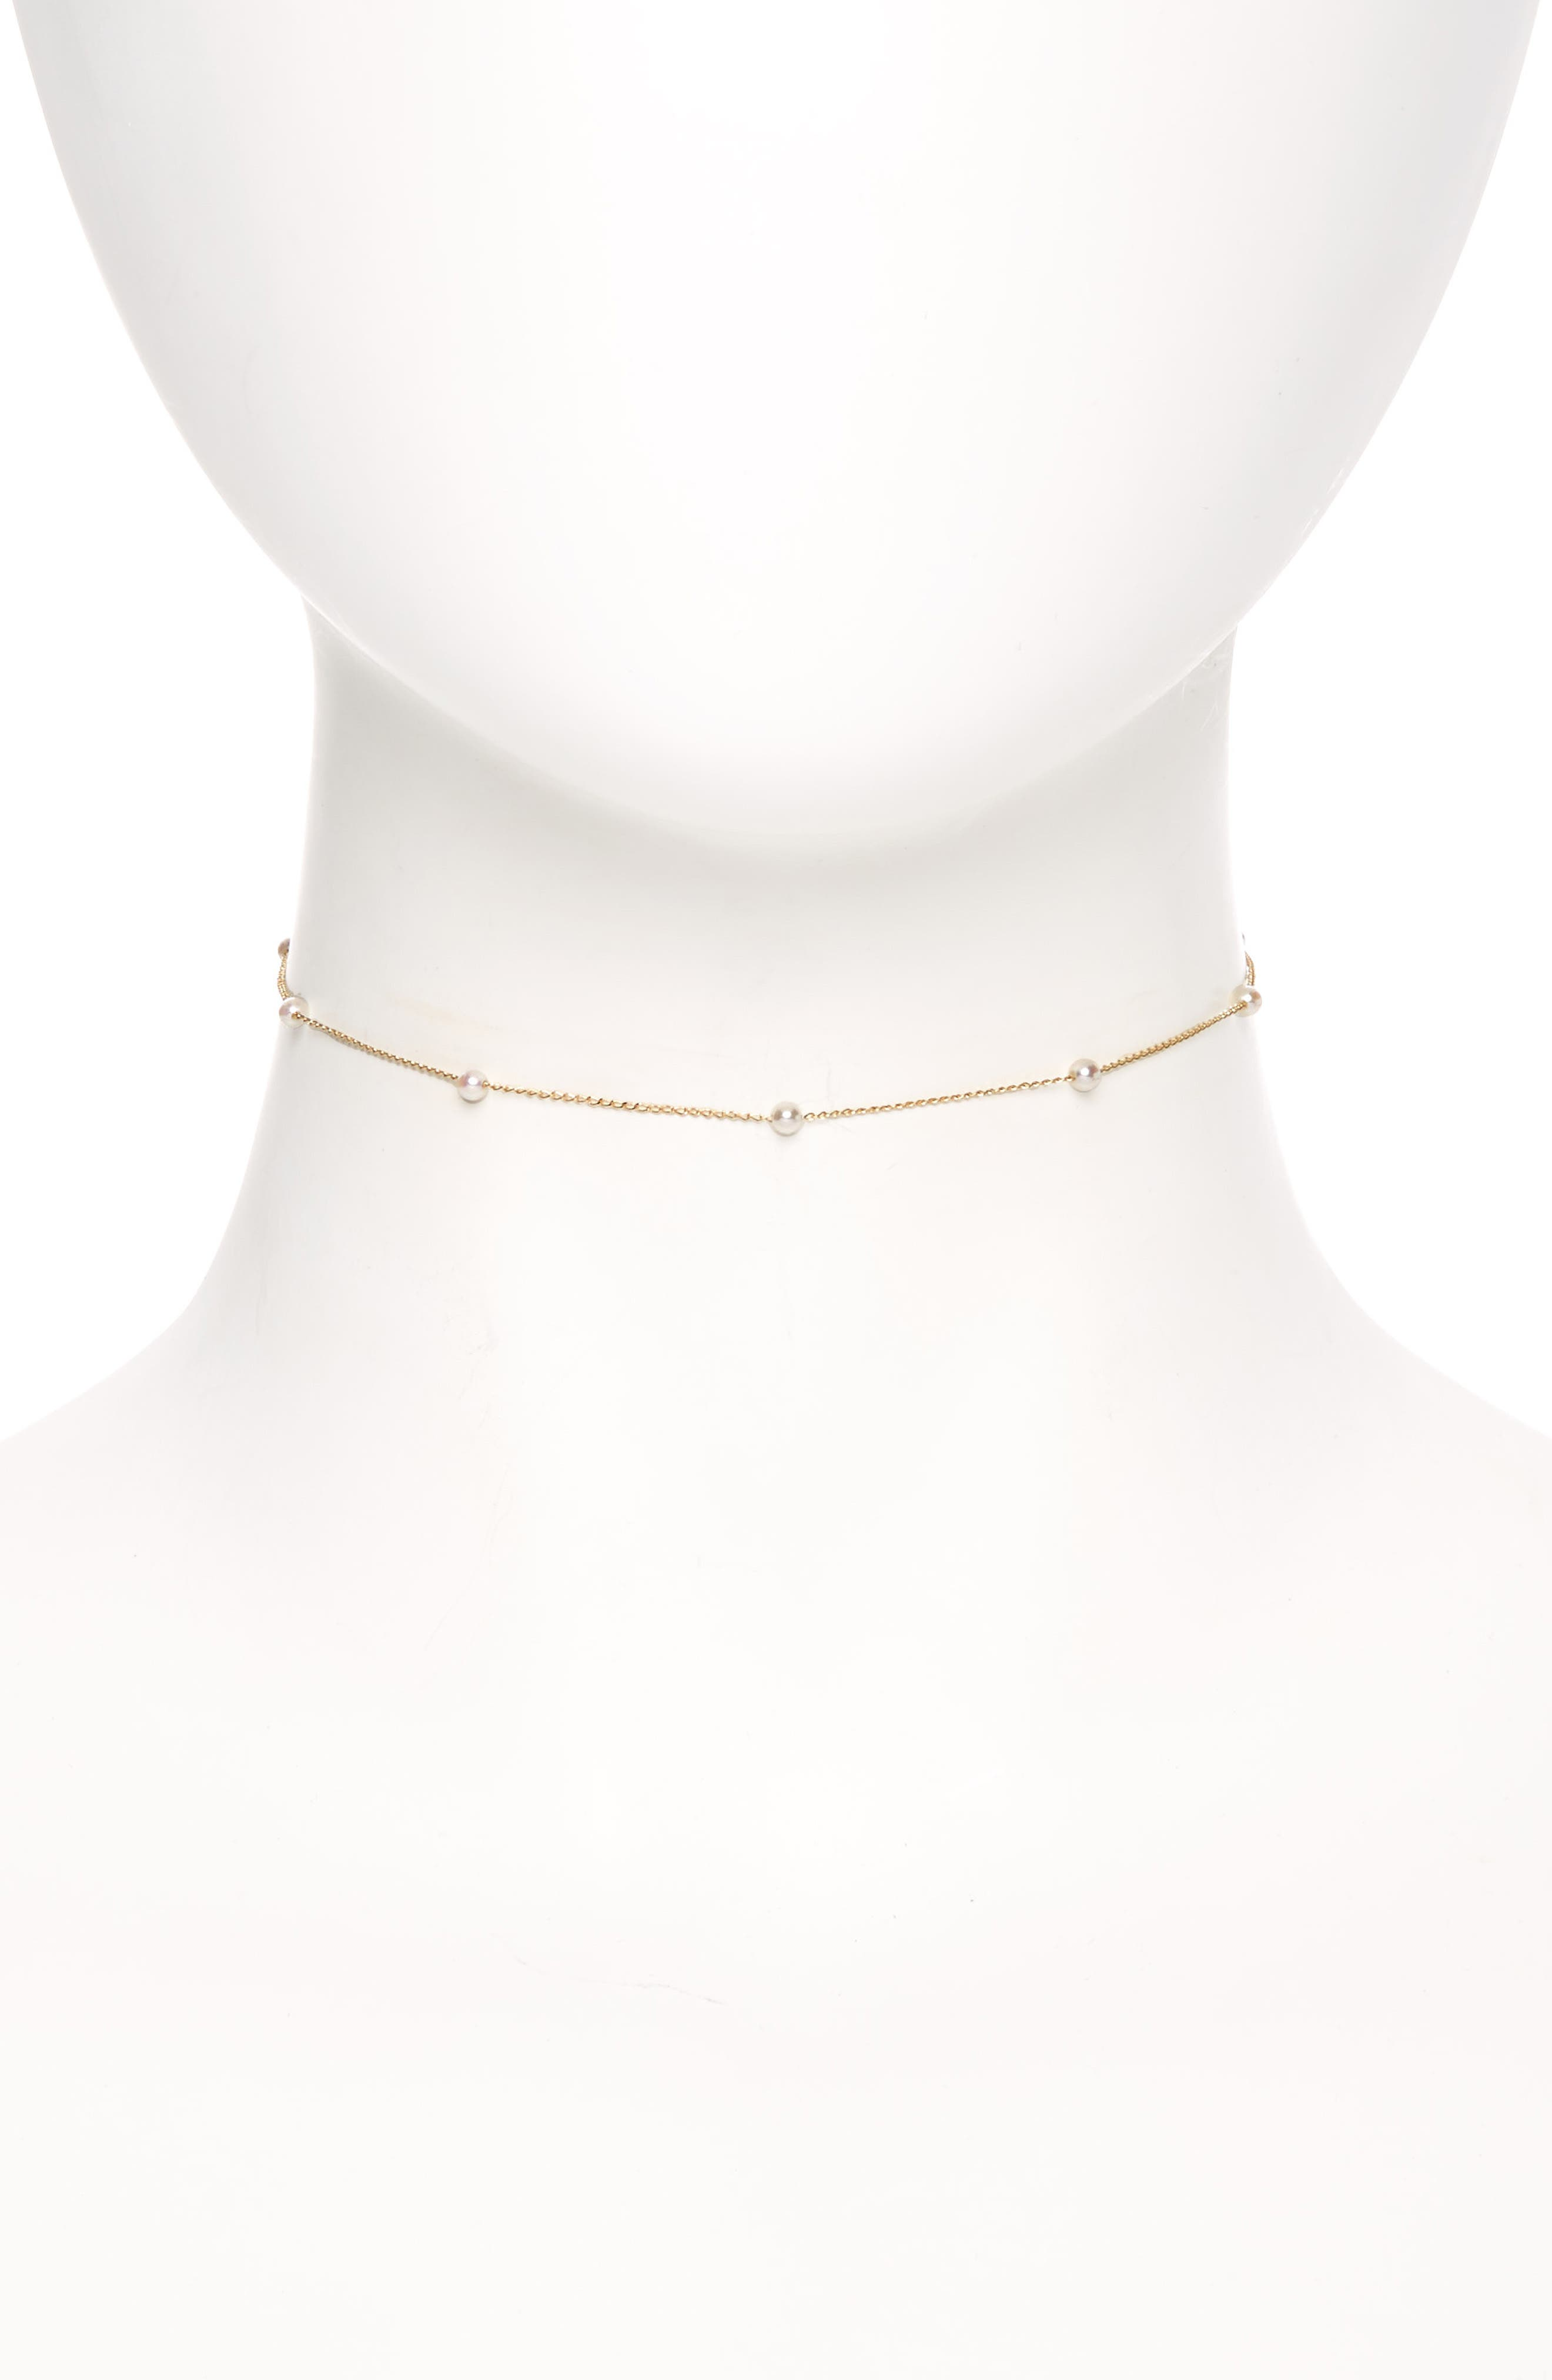 Sea of Beauty Pearl Chain Choker,                             Main thumbnail 1, color,                             Yellow Gold/ White Pearl